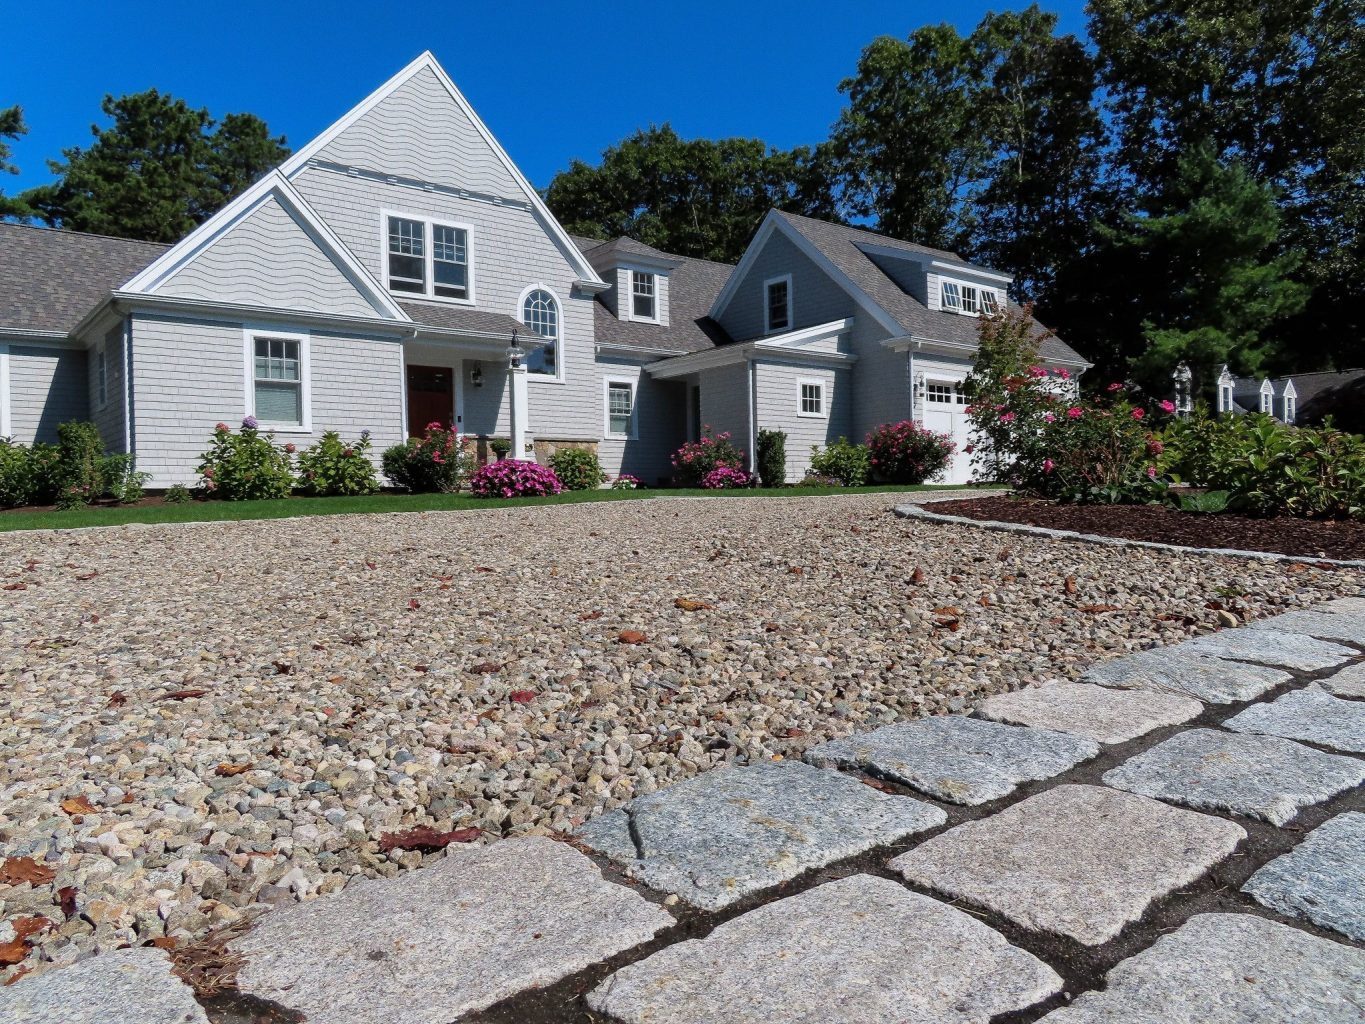 New peastone driveway with stone apron leads up to a Cape Cod style home with two levels and an addition